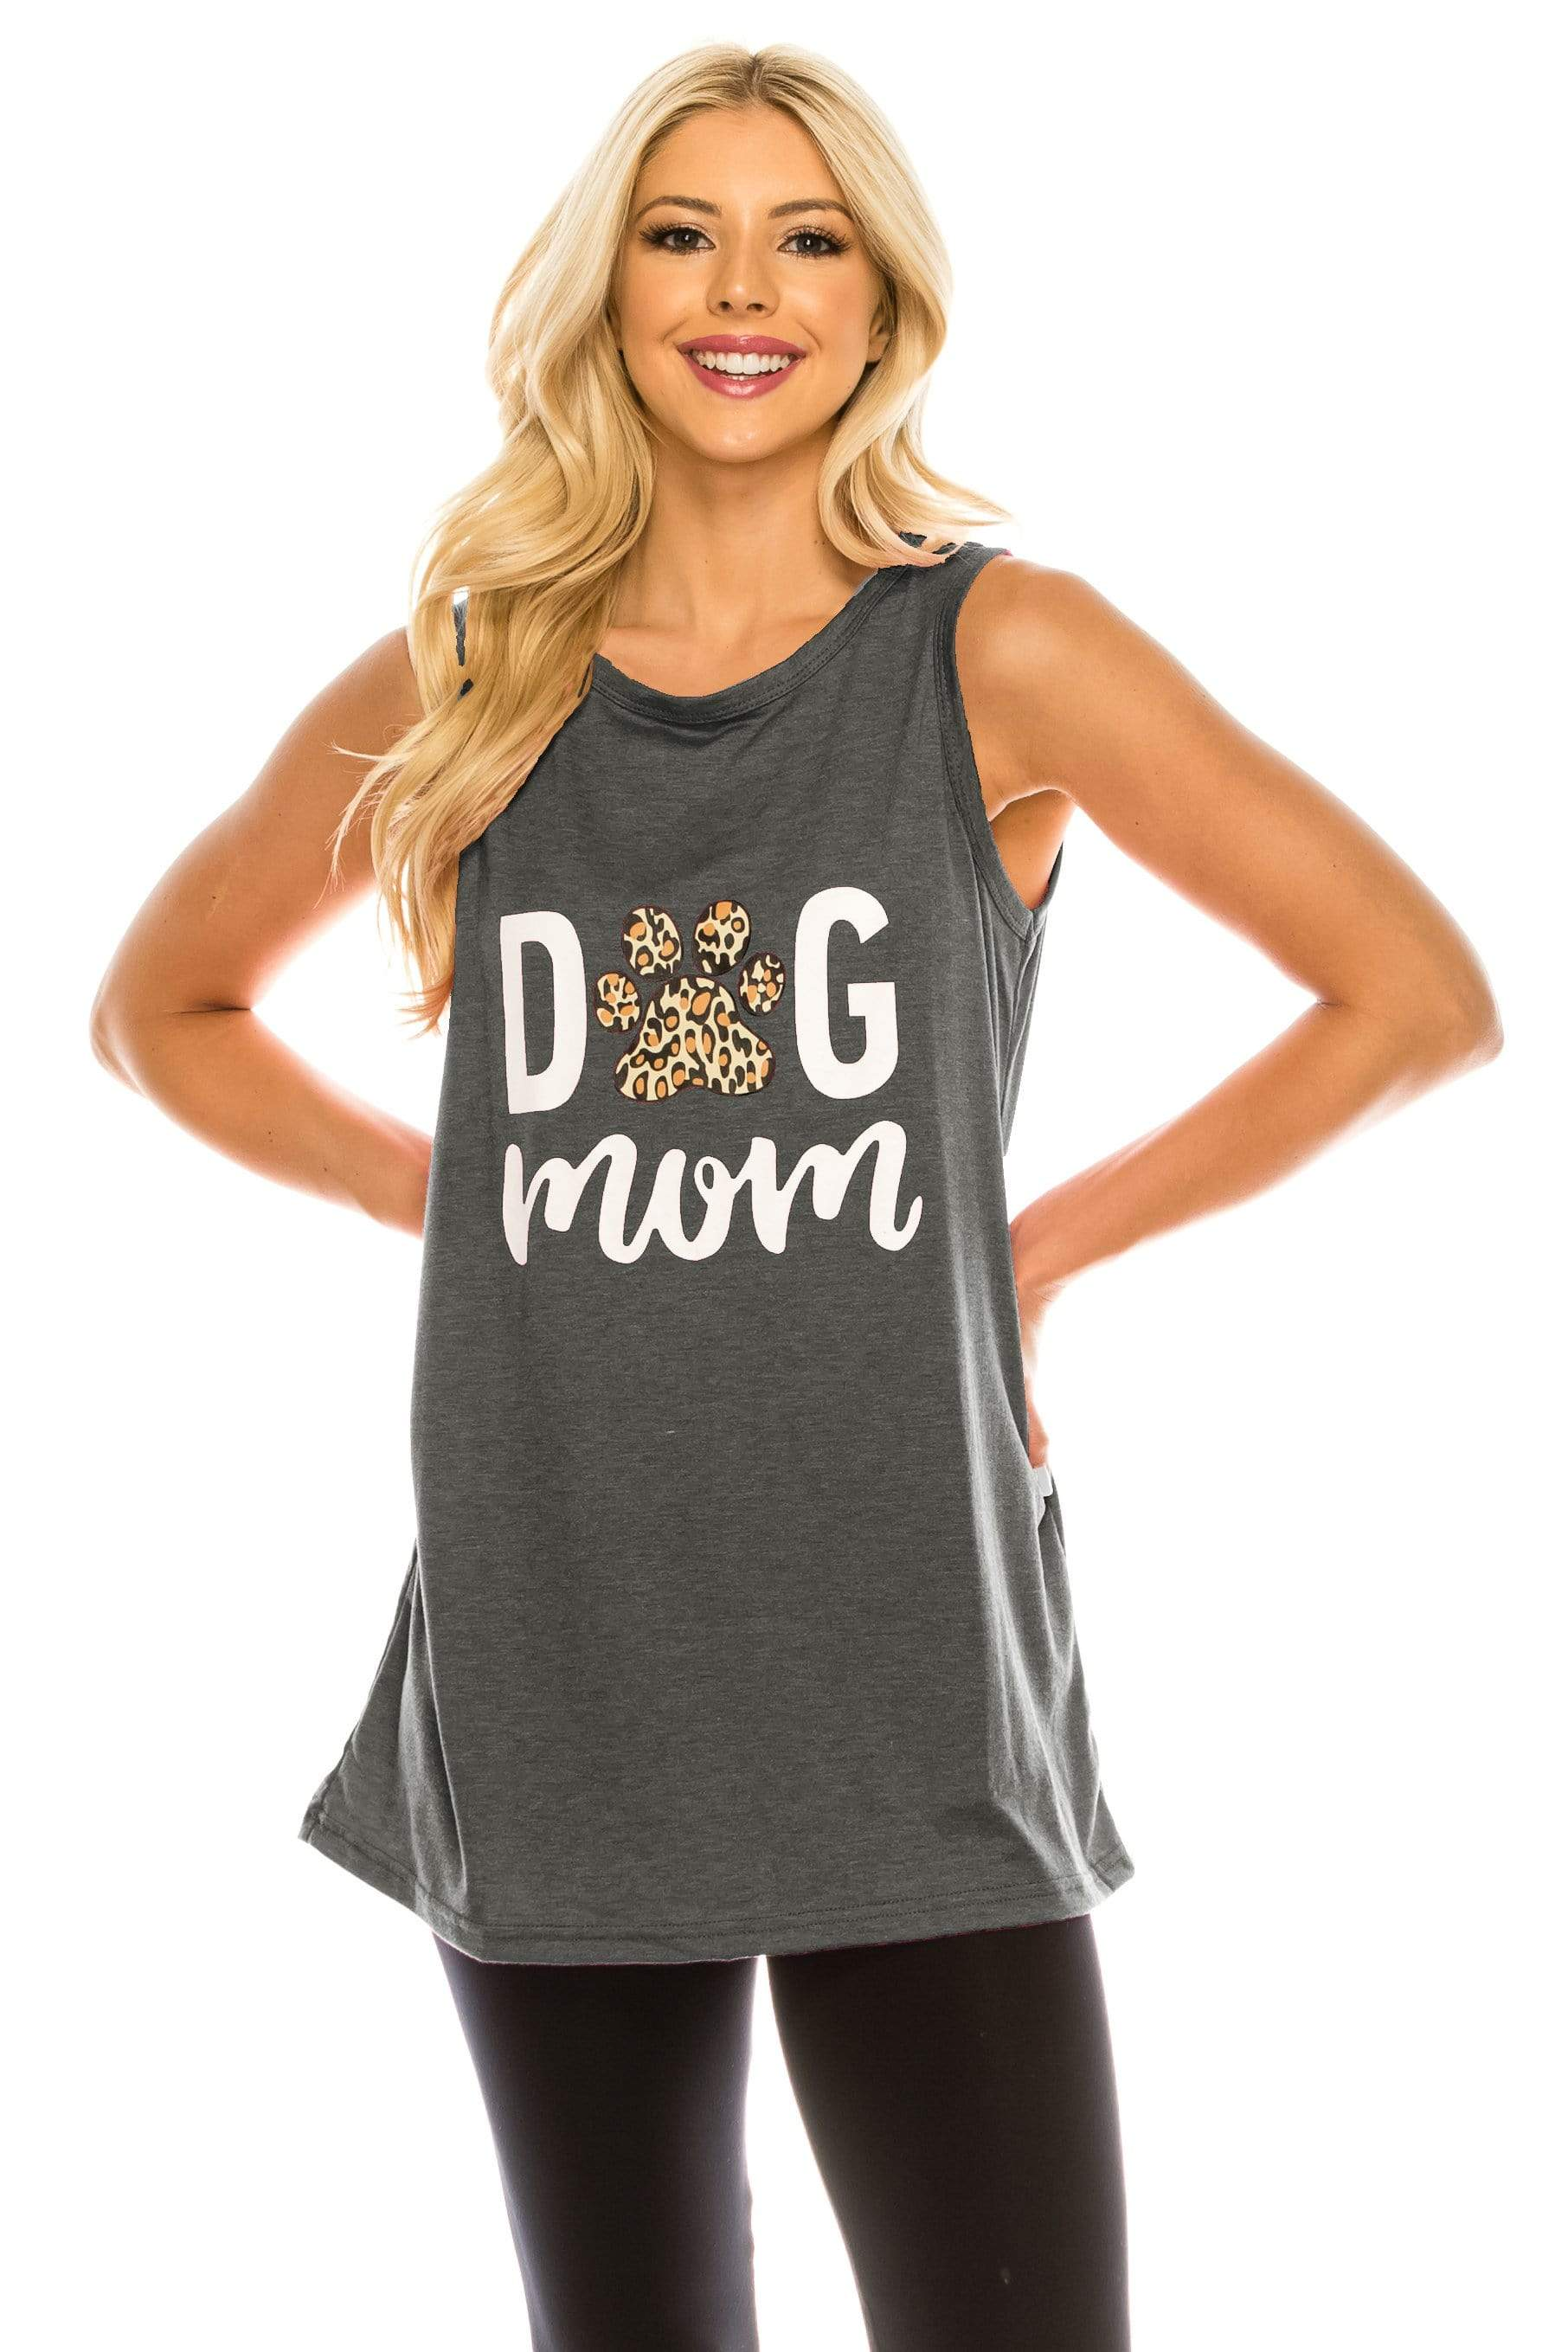 Haute Edition WOMEN'S TOP DARK CHARCOAL / S Haute Edition Women's Dog Mom Loose Fit Tank top. Plus size available